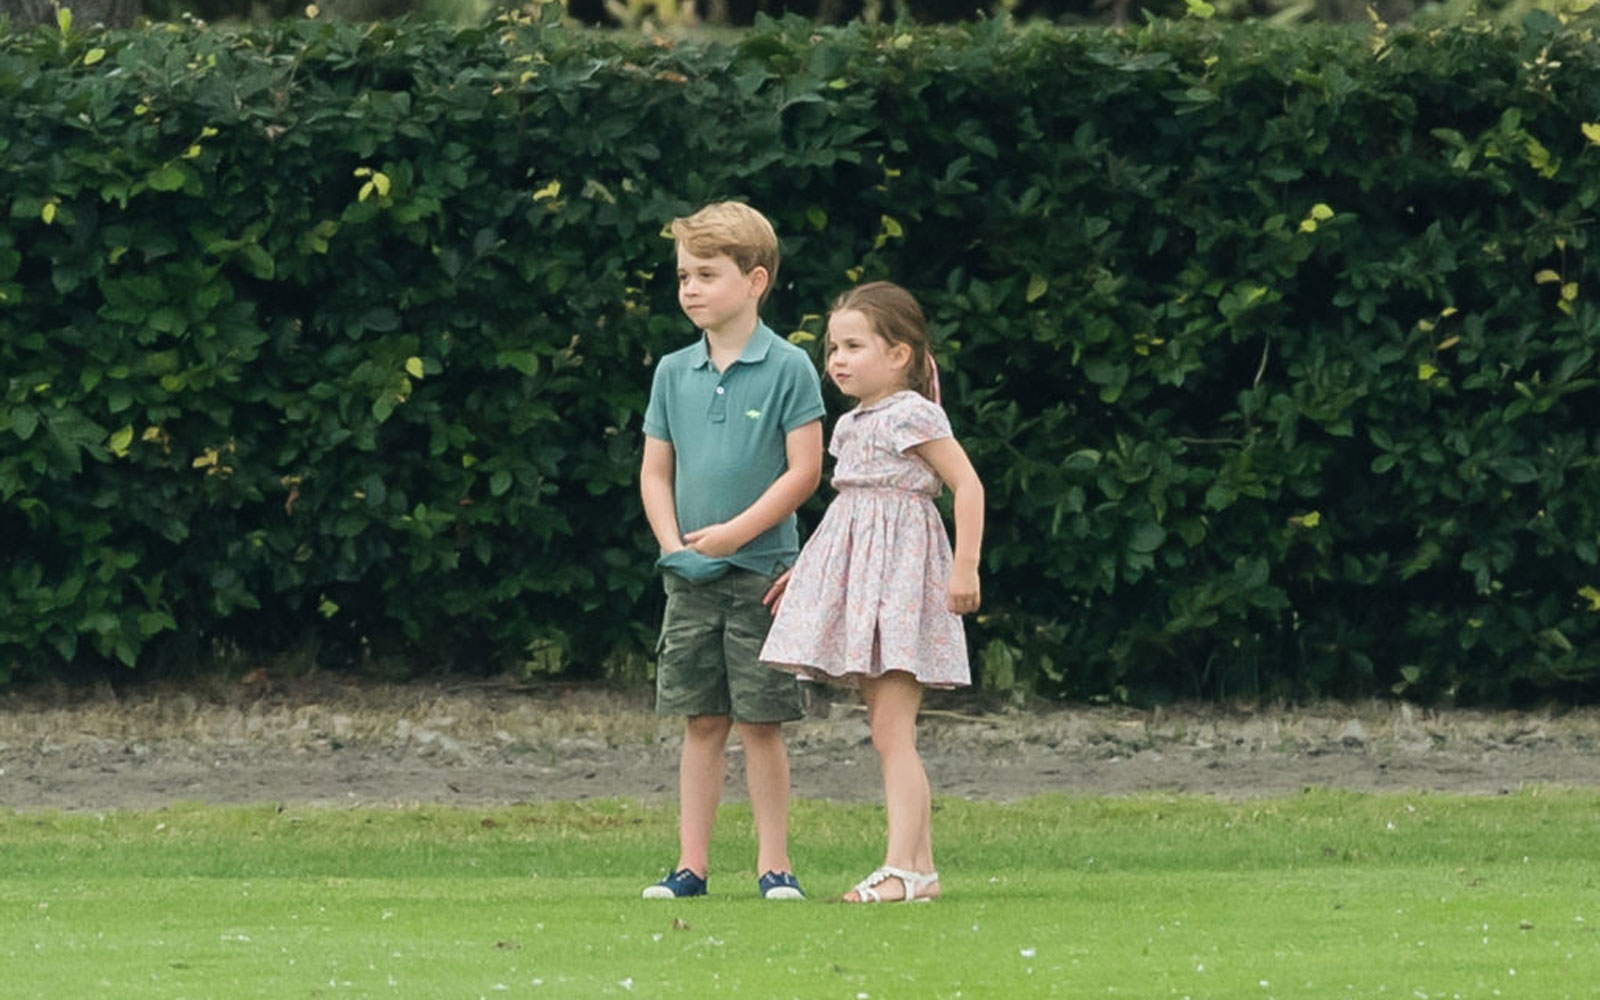 Princess Charlotte 'Can't Wait to Be With Prince George at Big School' Next Week